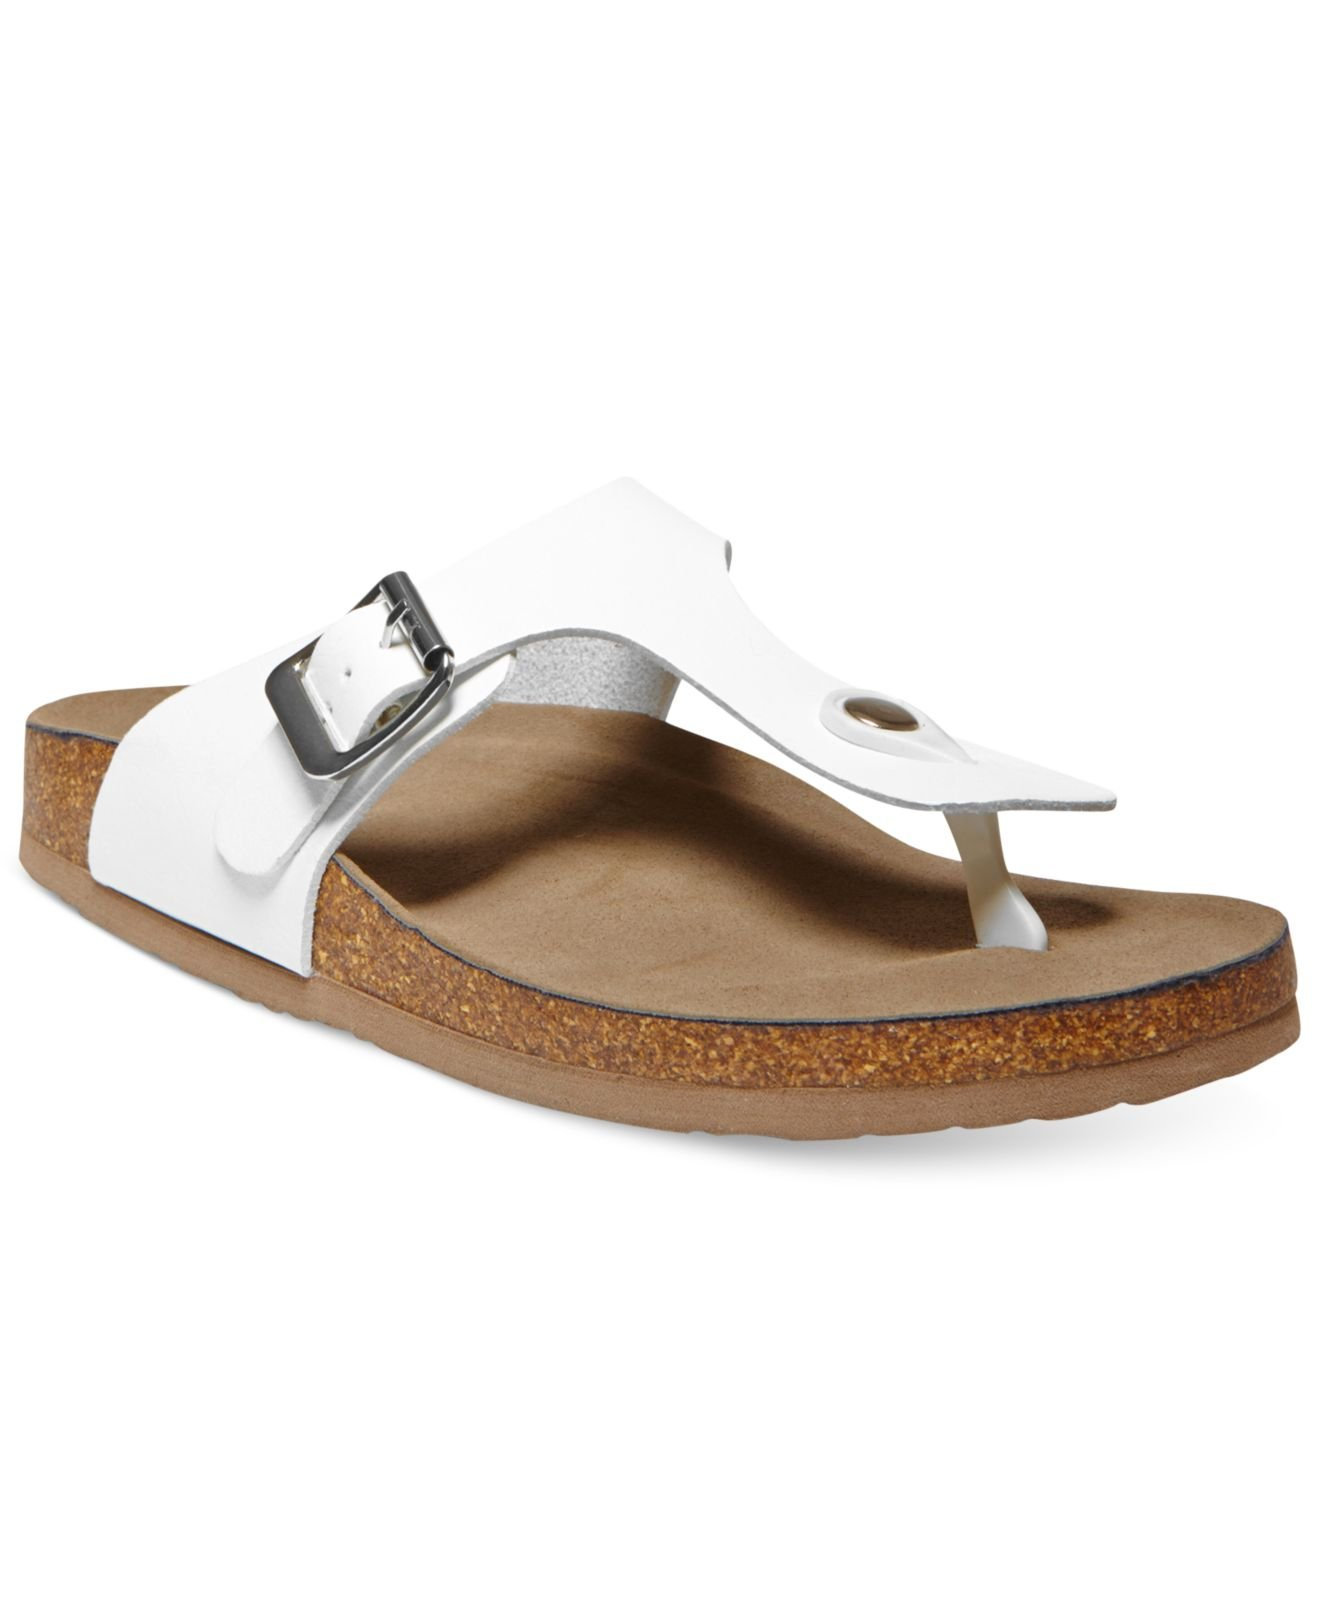 dc7d89d39f9a Lyst - Madden Girl Boise Footbed Thong Sandals in White